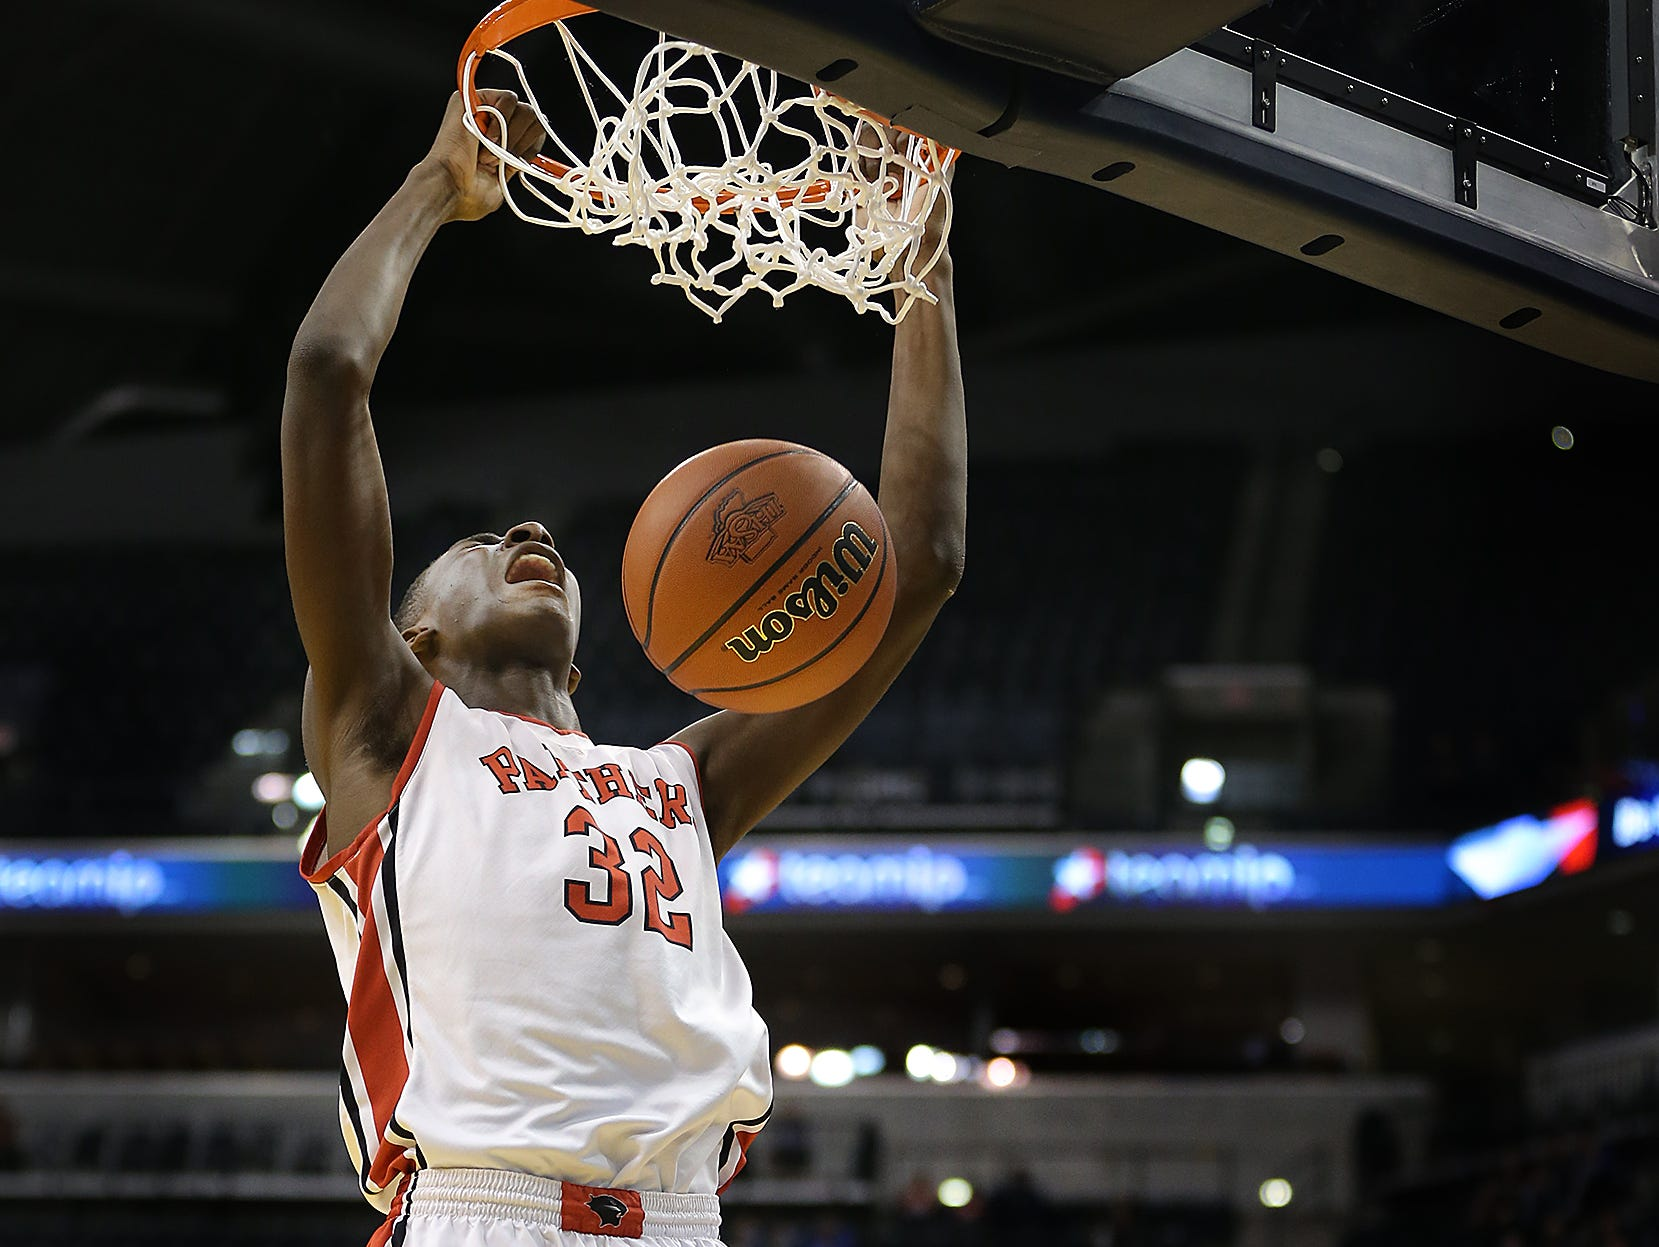 Park Tudor's Jaren Jackson Jr., dunks on Frankton's Maurice Knight,right, during their ISHAA 2A State Championship game. The Park Tudor Panther defeated the Frankton Eagles 73-46 to win the IHSAA 2A Boys Basketball State Final Saturday, March 28, 2015, afternoon at Bankers Life Fieldhouse.